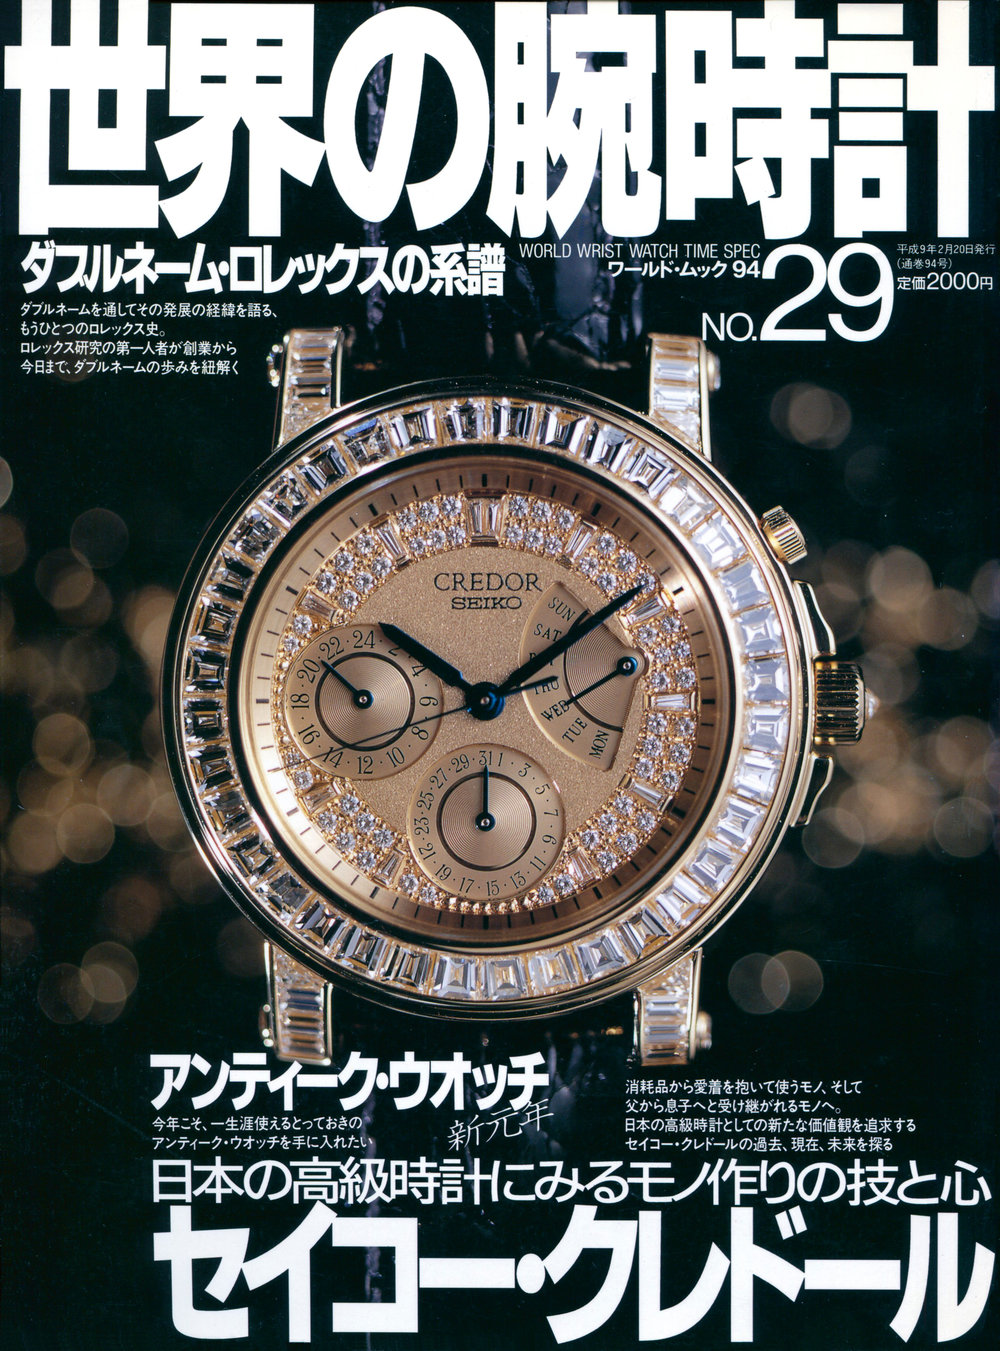 Cover - World Wrist Watch Time Spec No. 29